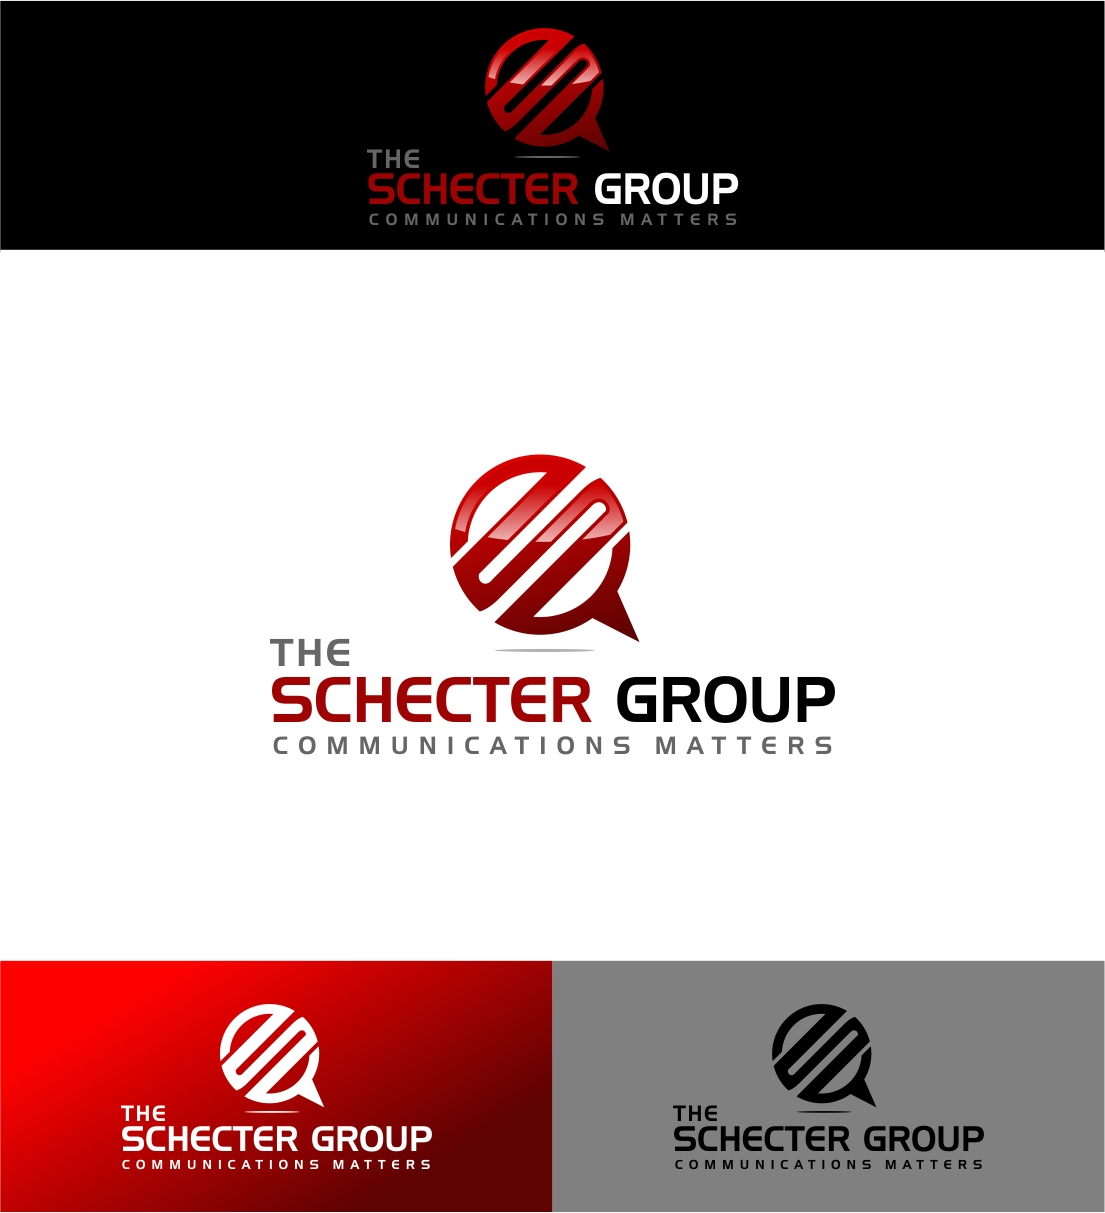 Logo Design by haidu - Entry No. 59 in the Logo Design Contest Inspiring Logo Design for The Schecter Group.